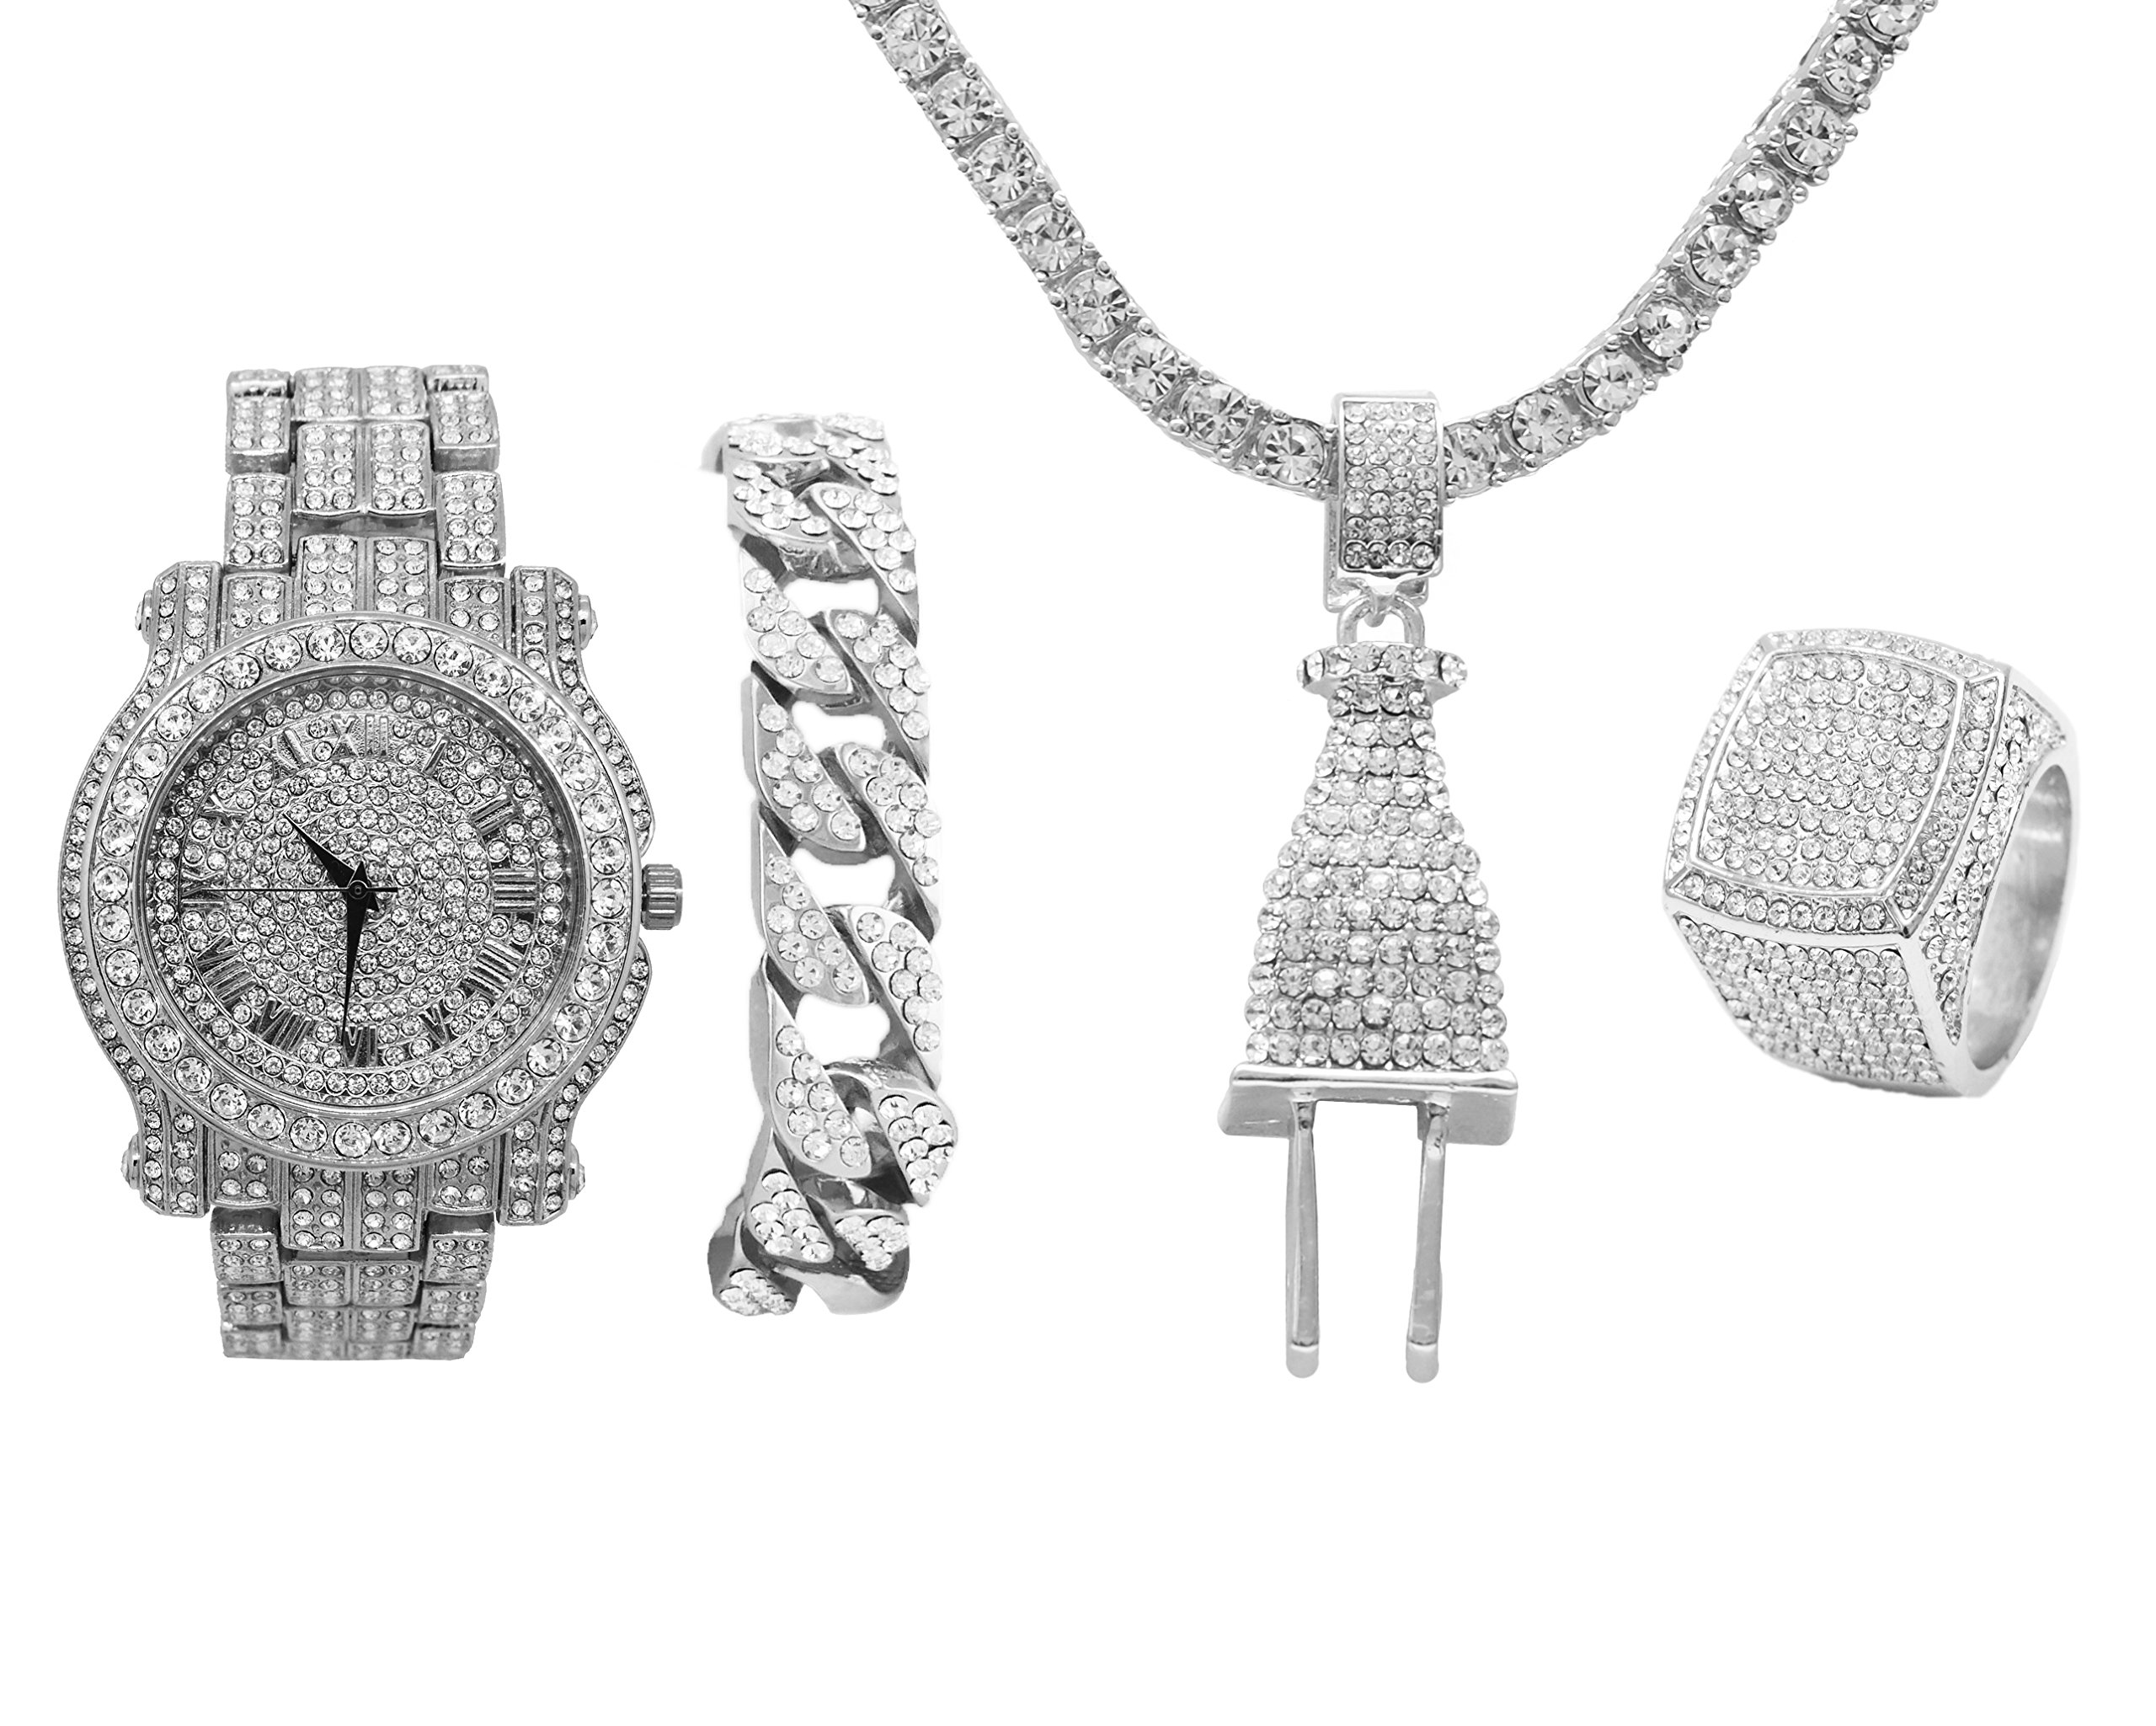 Bling-ed Out Plug Hip Hop Pendant - Iced Out Luxury Watch Covered with Crystal Clear Rhinestones - Silver Iced Cuban Bracelet and Bling Ring Gift Set - Shine Like a Celebrity - L0504Slv4 (8)